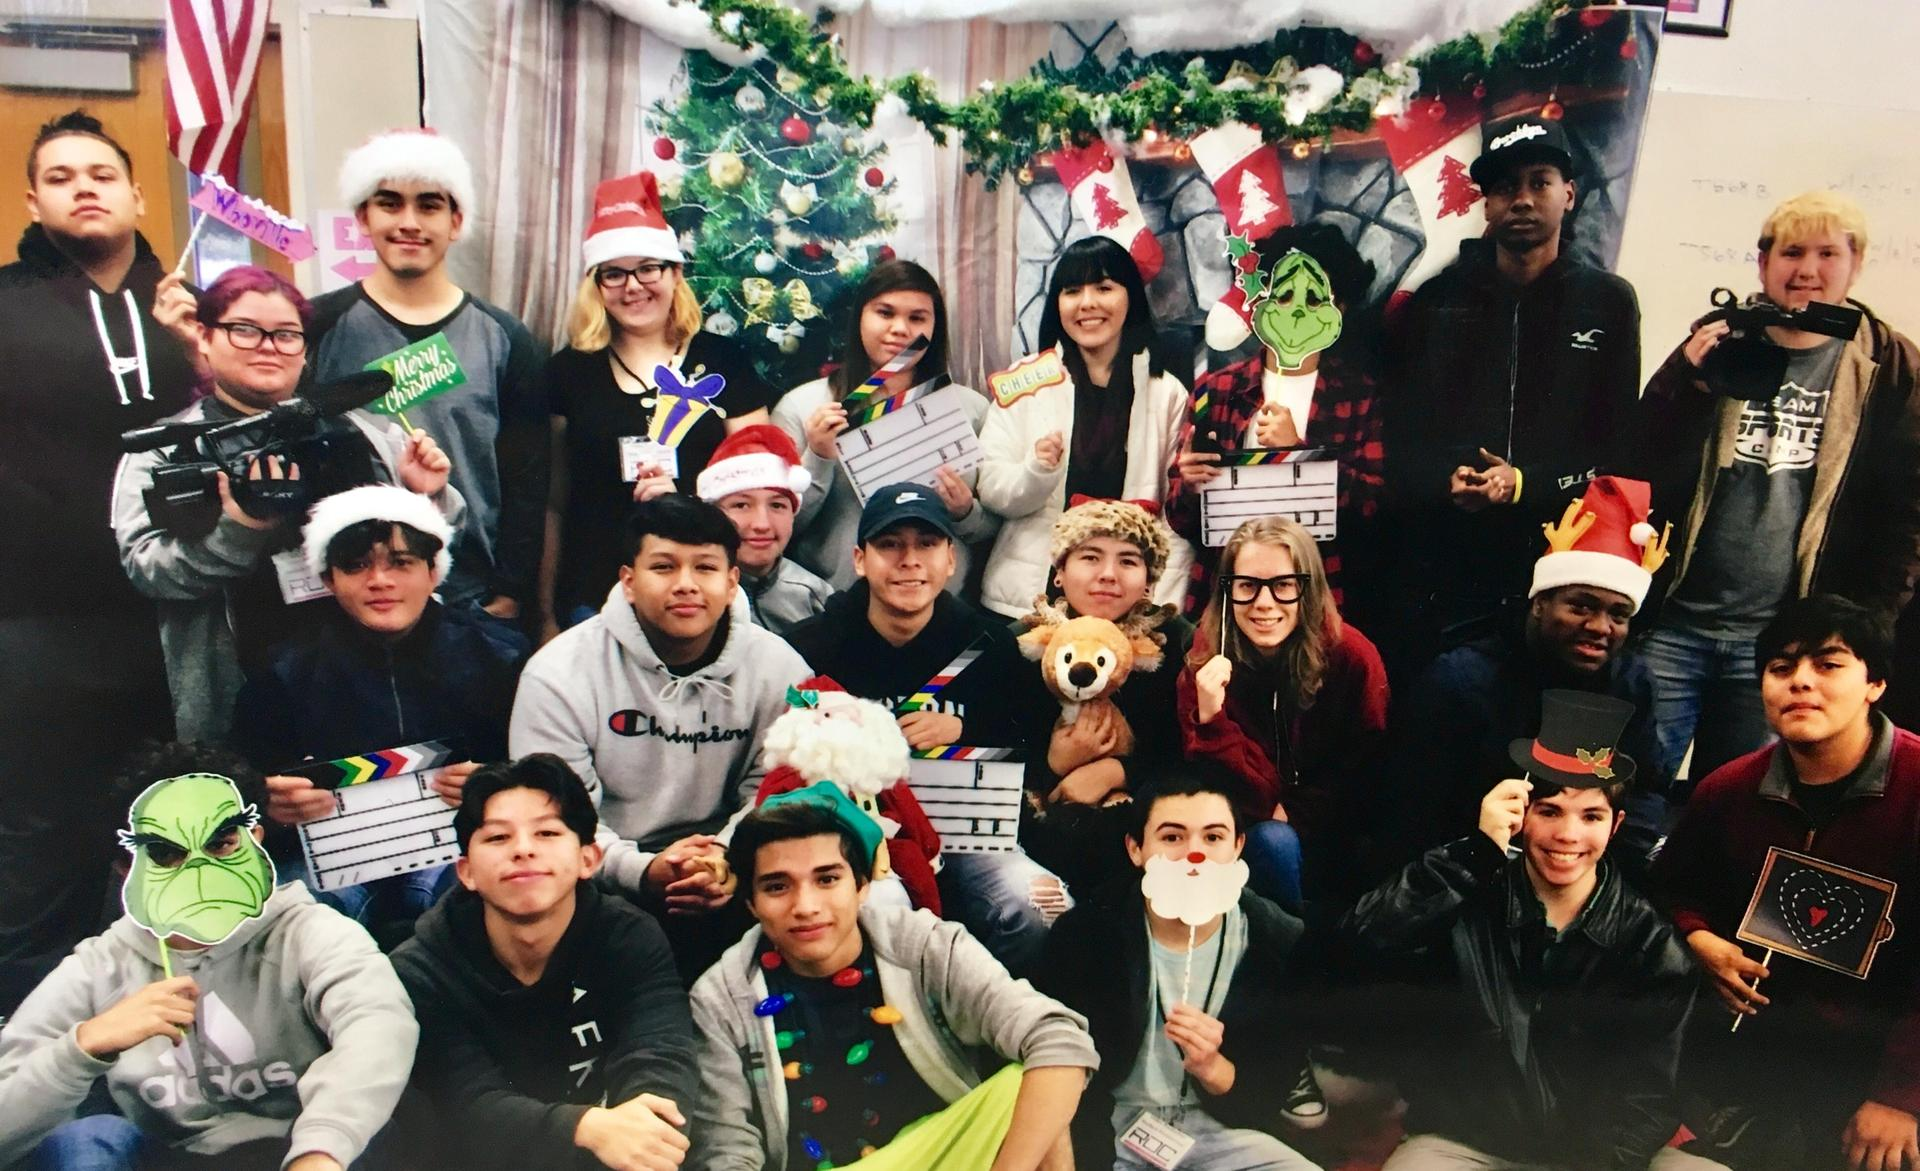 Christmas photo from the AM class!